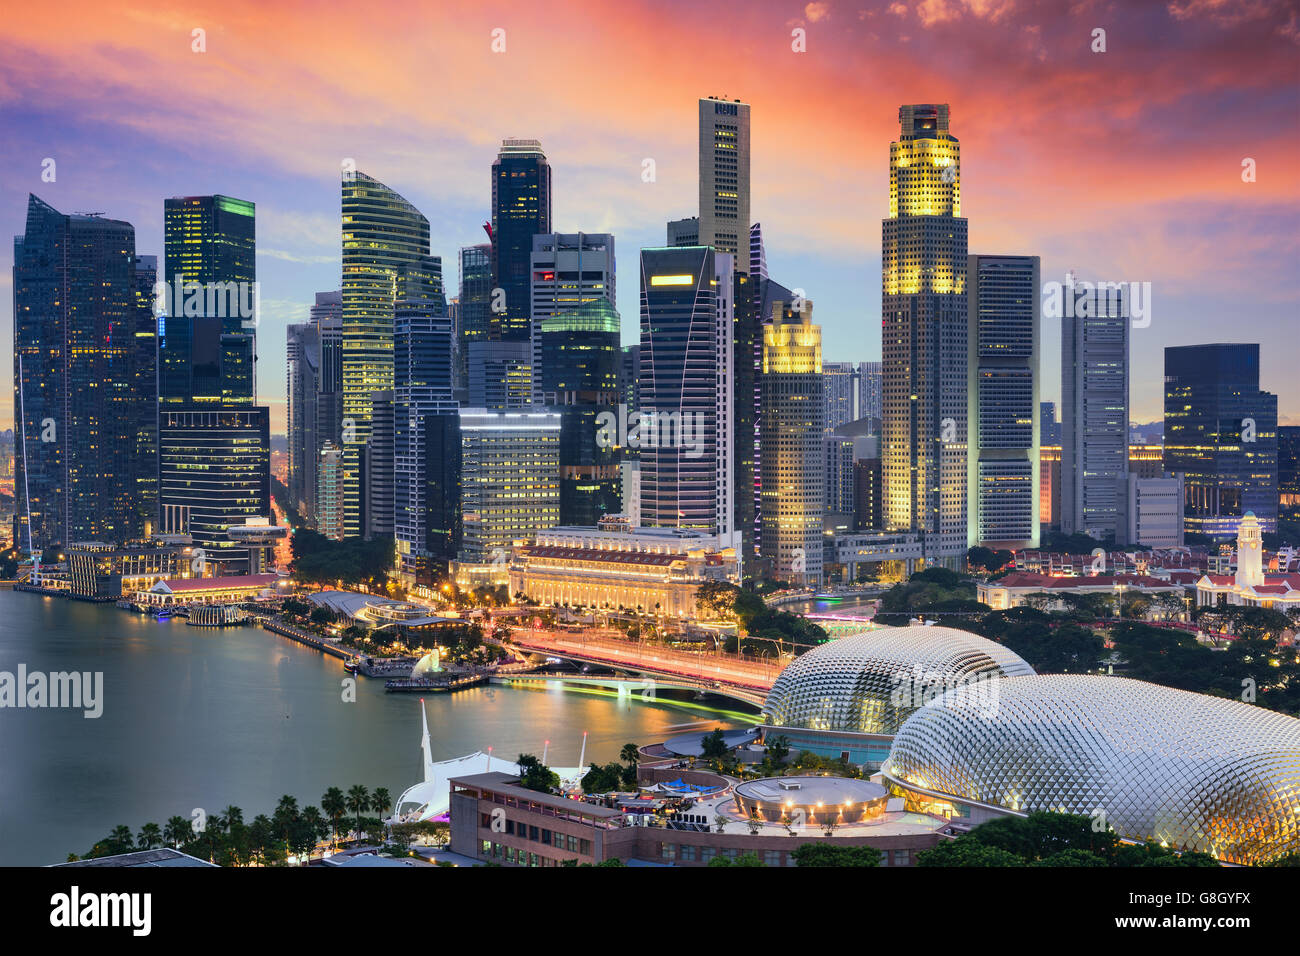 Skyline von Singapur Financial District in der Abenddämmerung. Stockbild